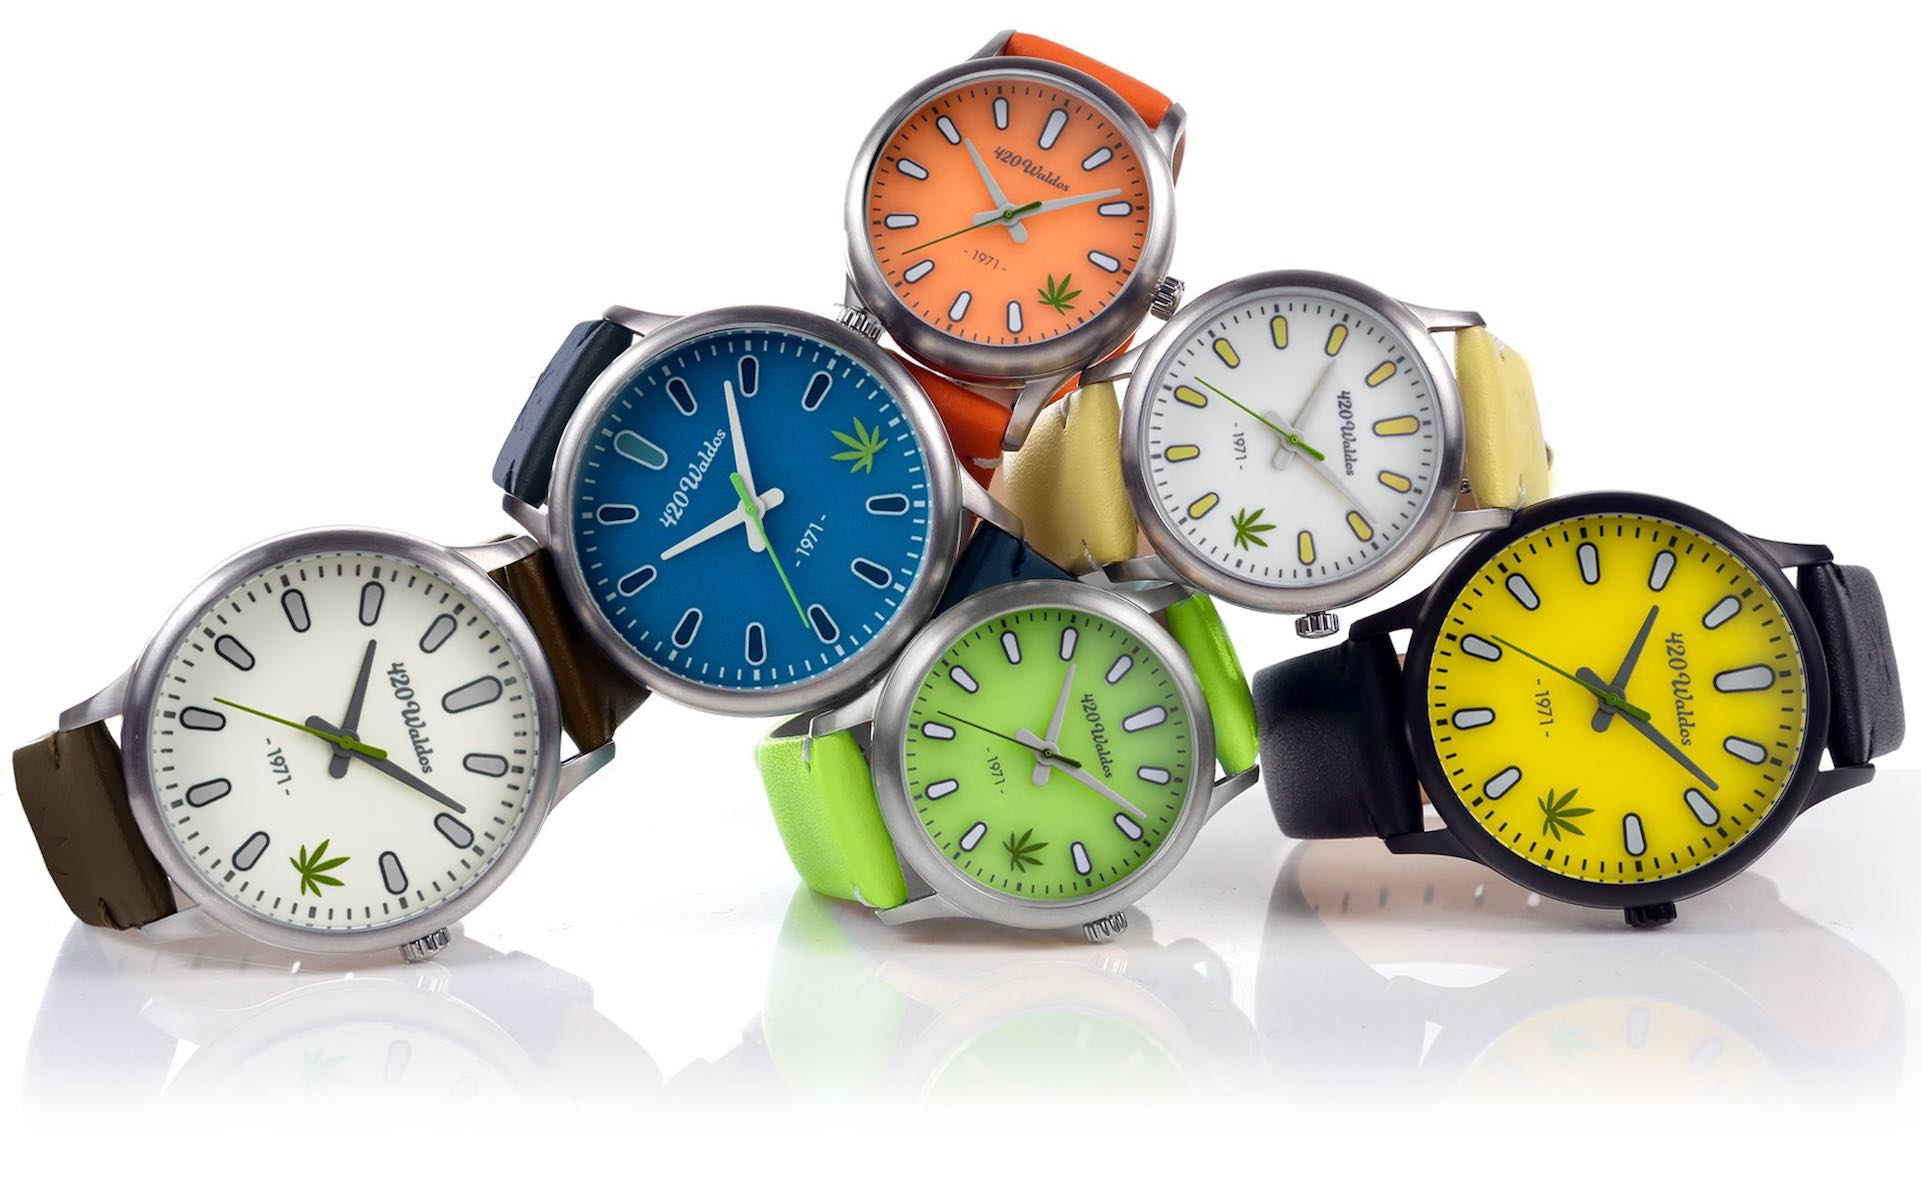 The 420 Waldos sell a $150 watch to benefit legalization. (Courtesy 420 Waldos)